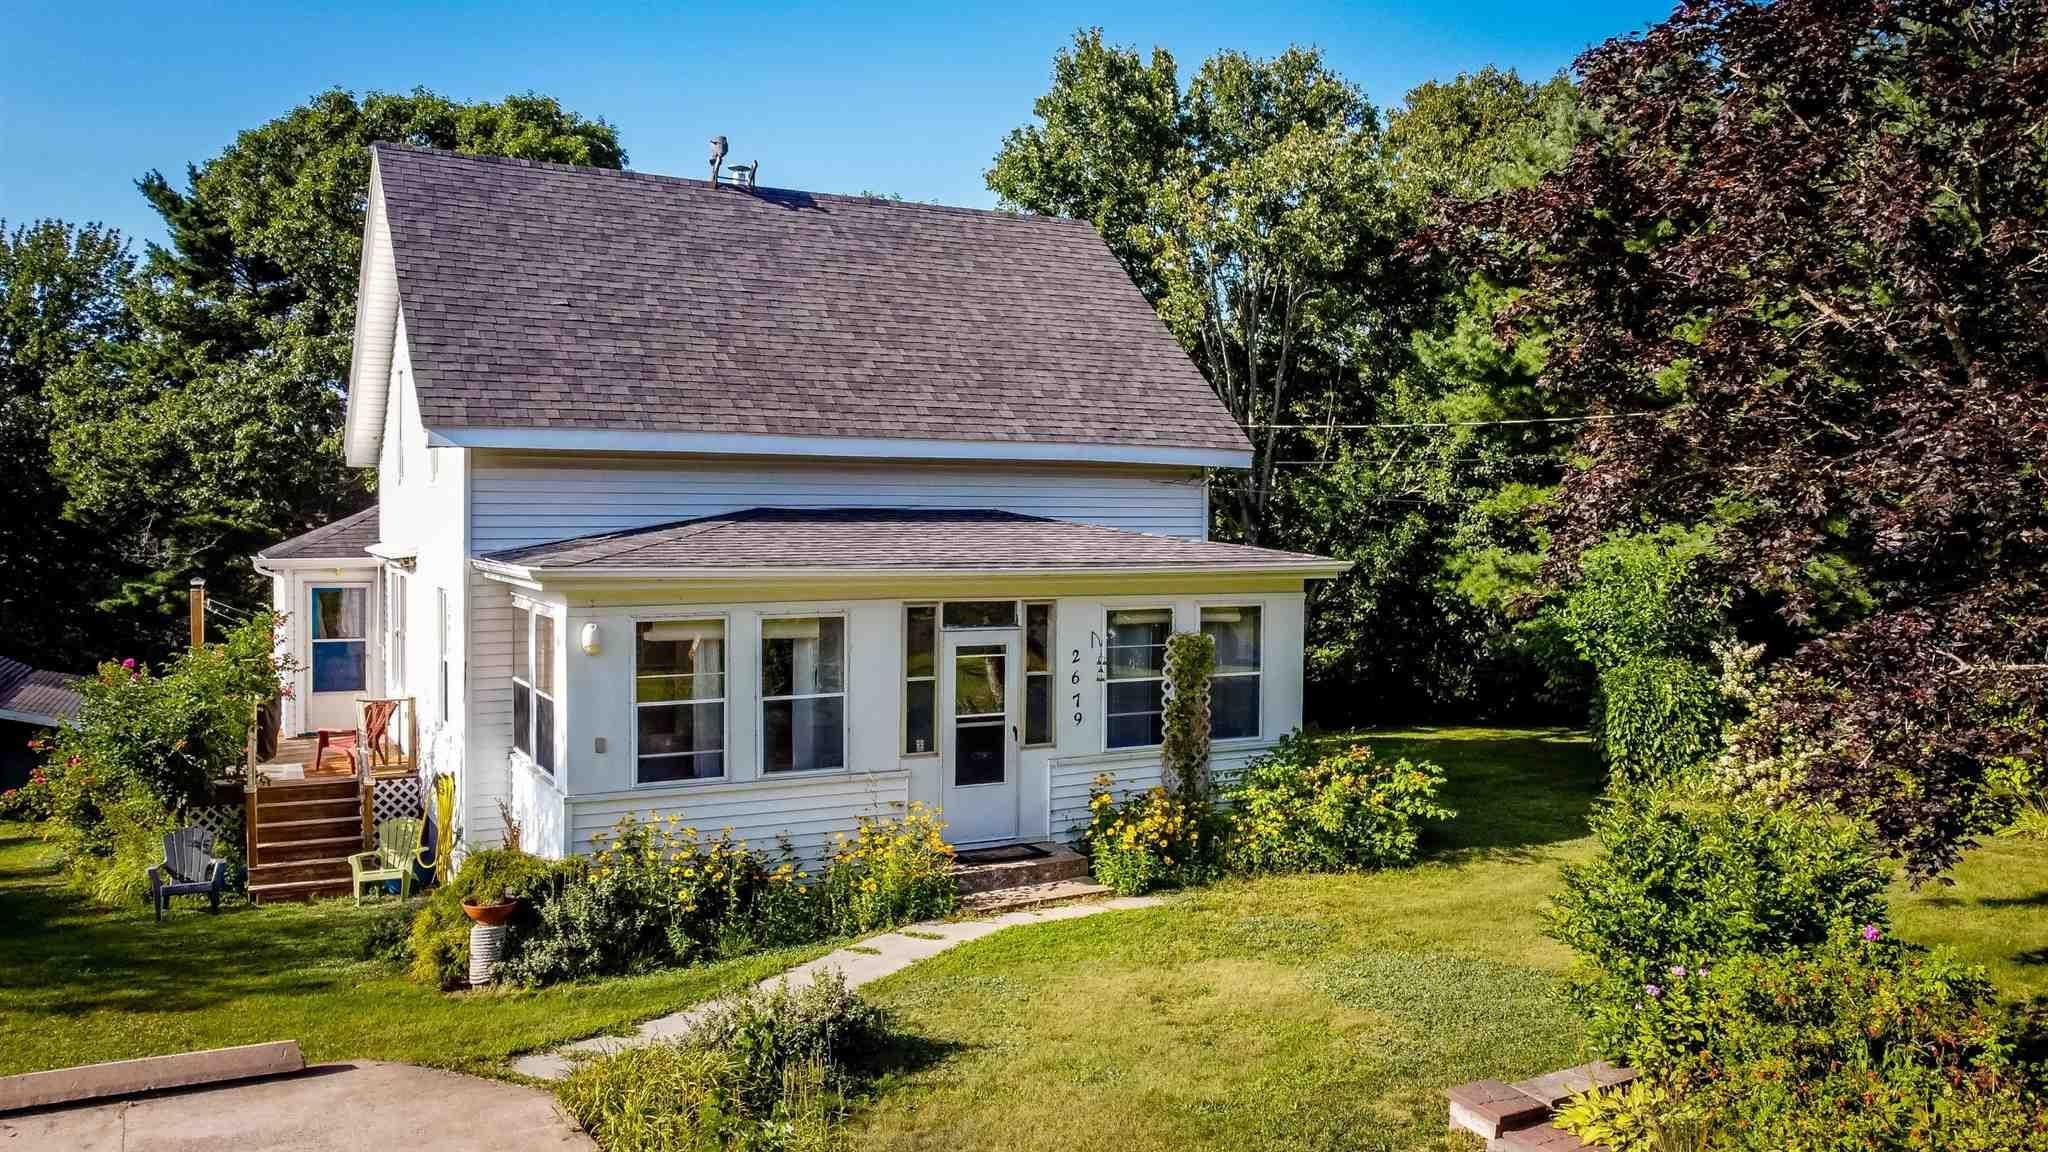 Main Photo: 2679 Lovett Road in Coldbrook: 404-Kings County Residential for sale (Annapolis Valley)  : MLS®# 202121736